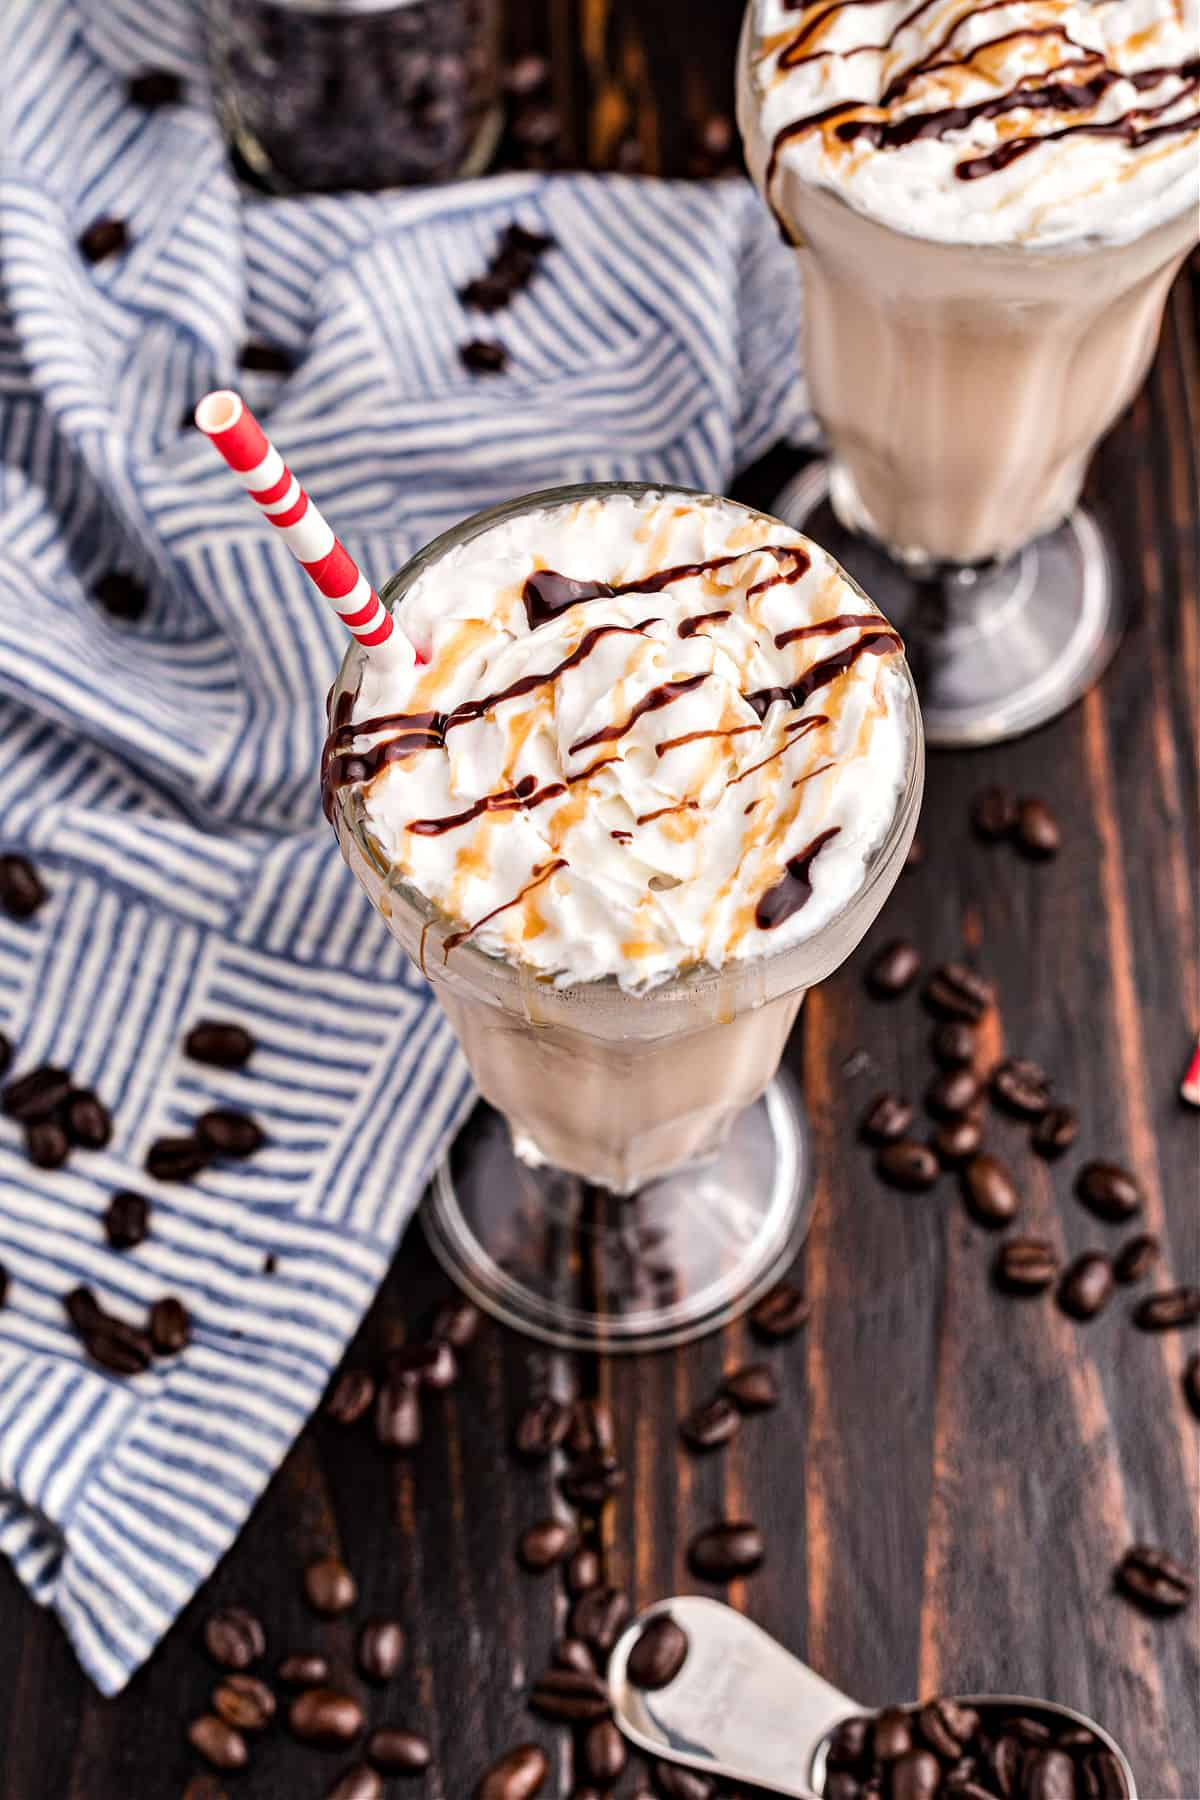 Two tall glasses of coffee milkshakes topped with drizzles of caramel and chocolate sauce.